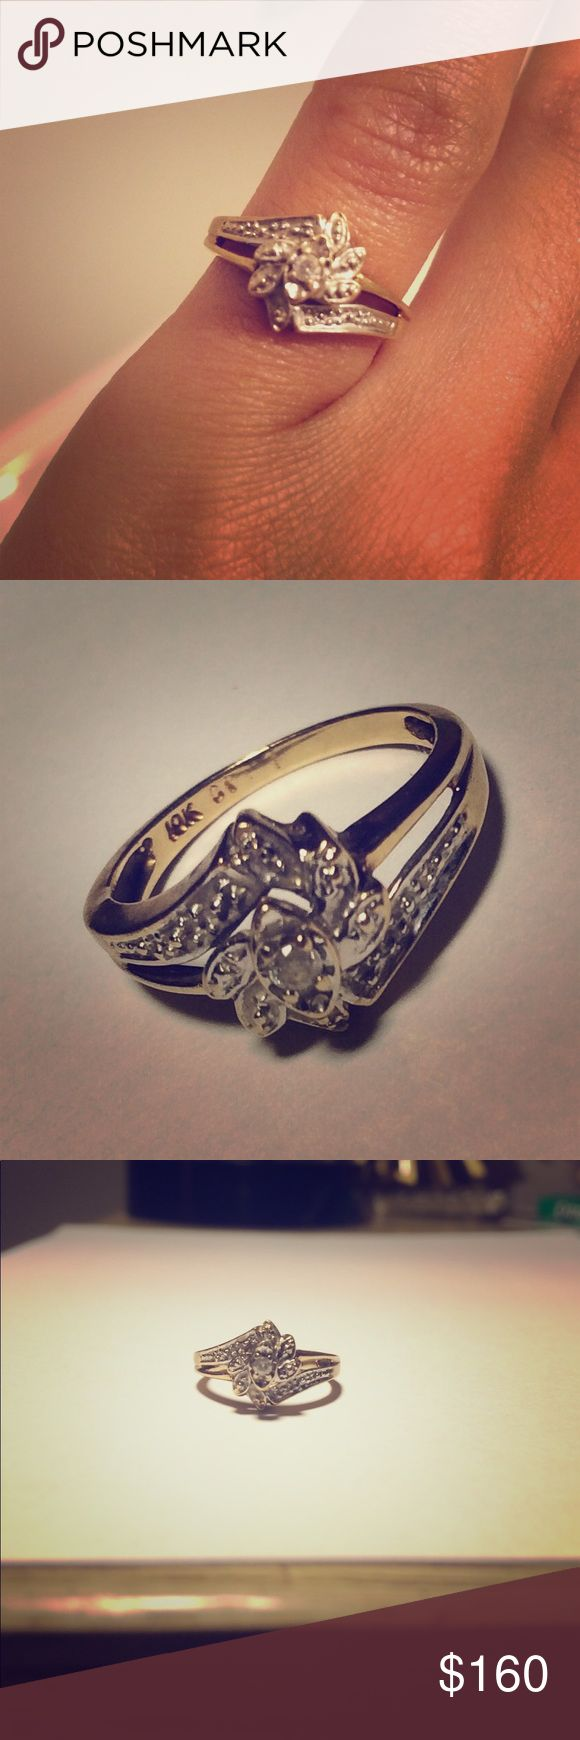 Diamond Wedding Ring With 10K Gold 10 K gold diamond wedding ring with flower design. The size of the only diamond is about a tenth of a karat. Jeweler has confirmed authenticity. Size 4 ( 1.4cm in diameter) Jewelry Rings